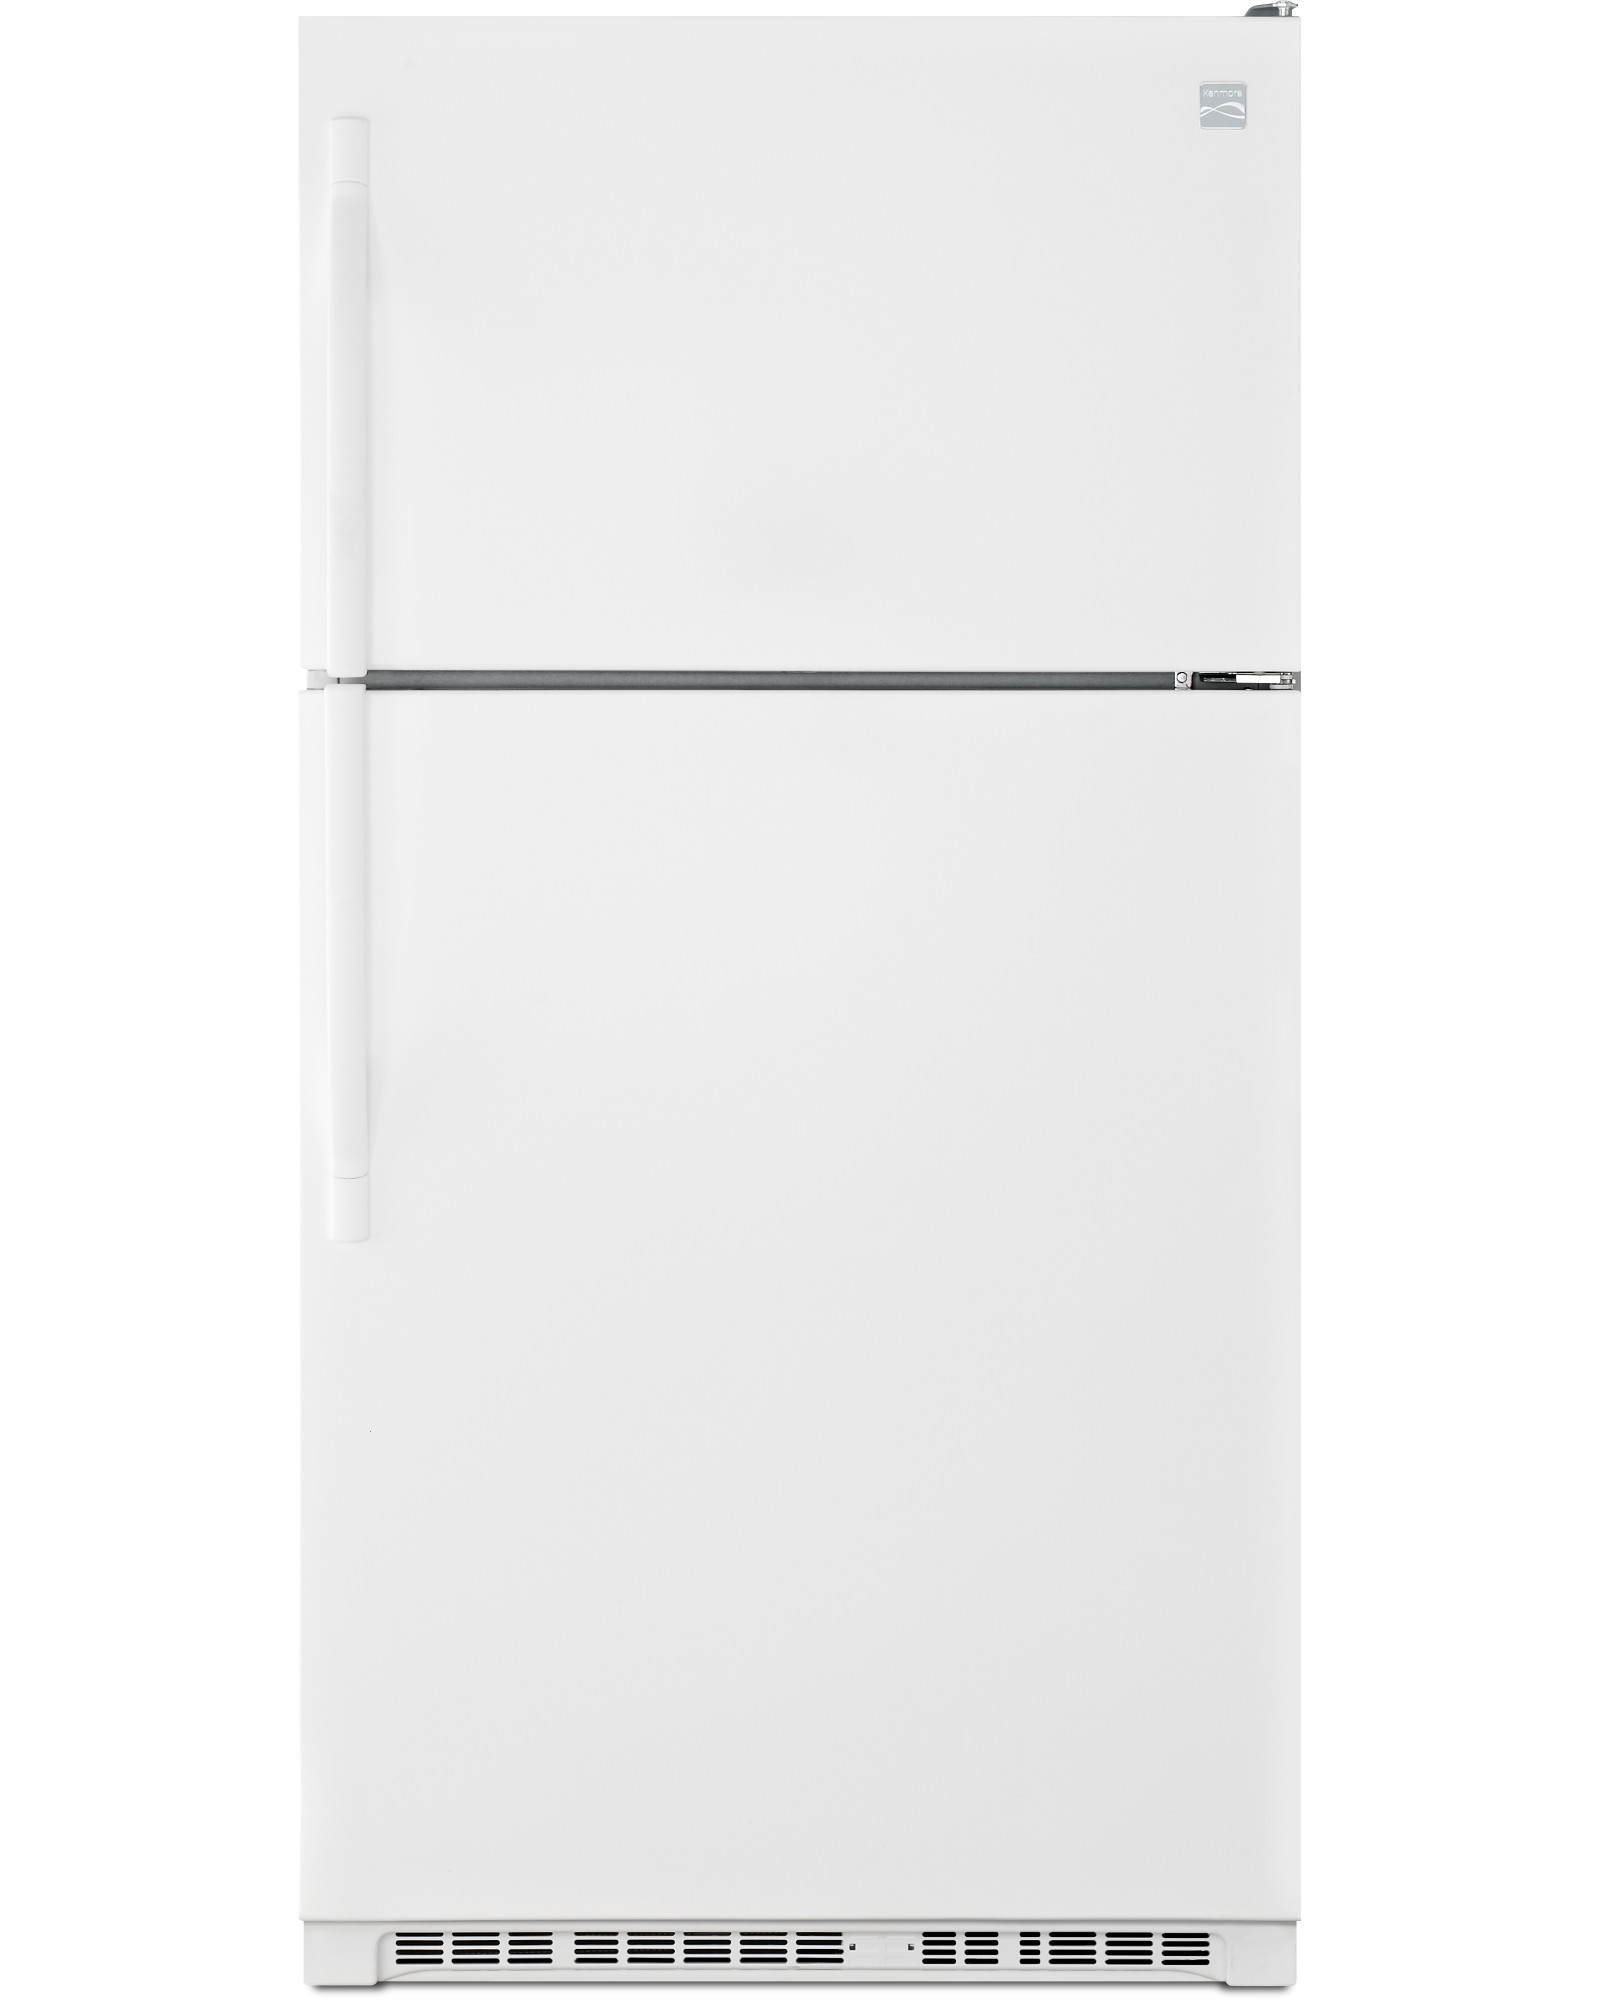 70212-20-5-cu-ft-Top-Freezer-Refrigerator-w-Ice-Maker-White